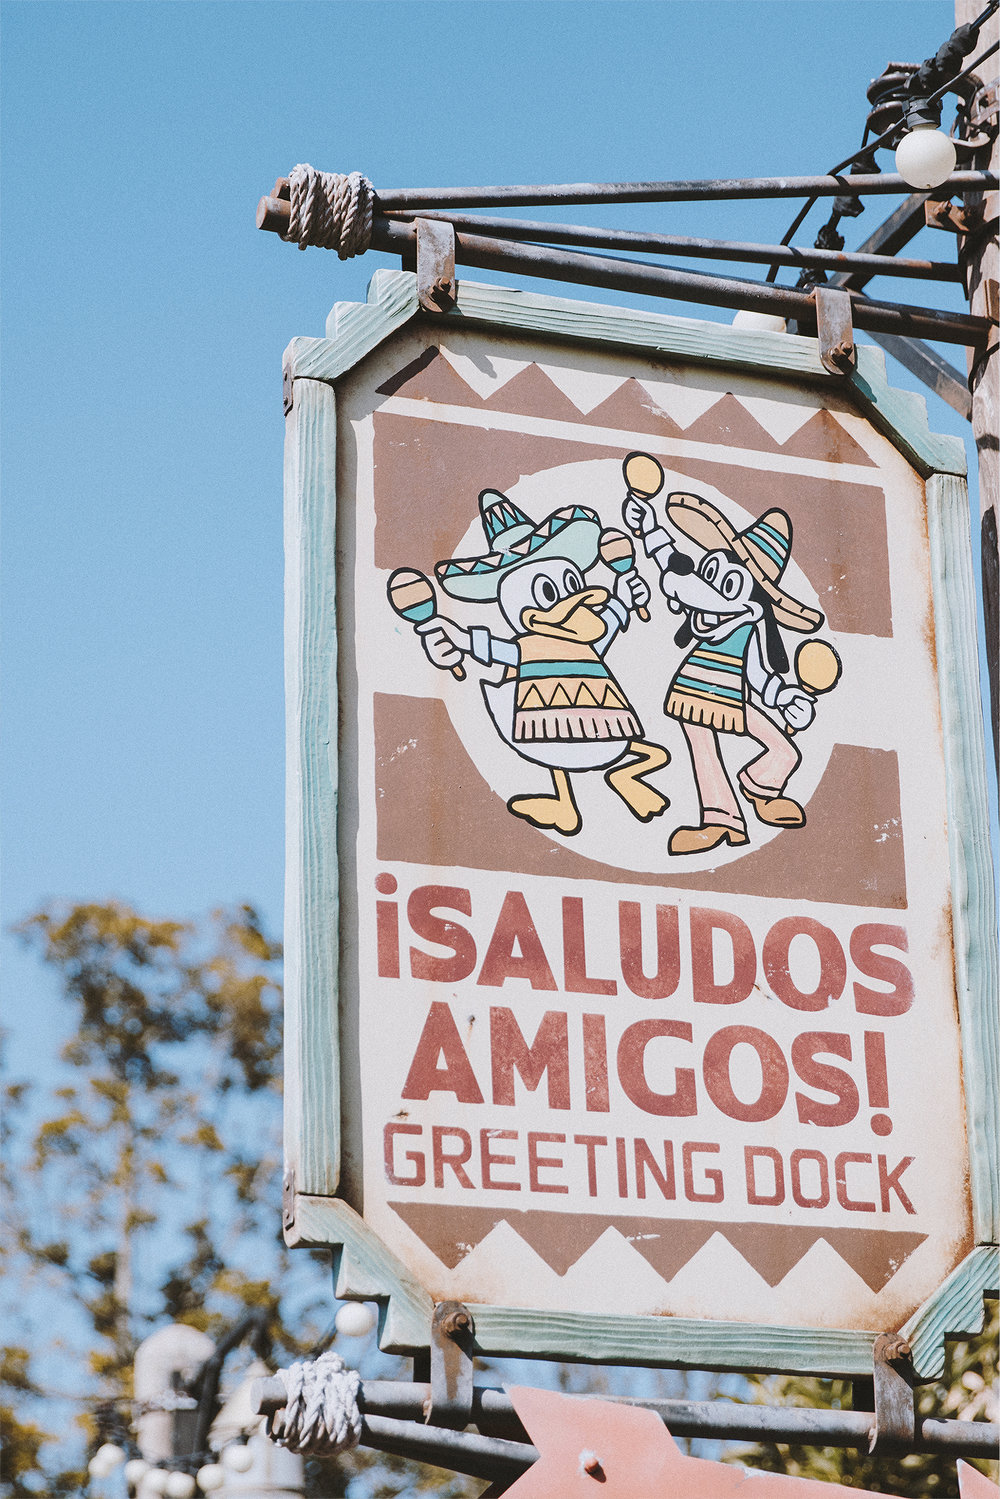 This greeting and sign is such a hoot!And if you're in the area visit Miguel's El Dorado Cantina for their melon soda (it has chia seeds in it!)